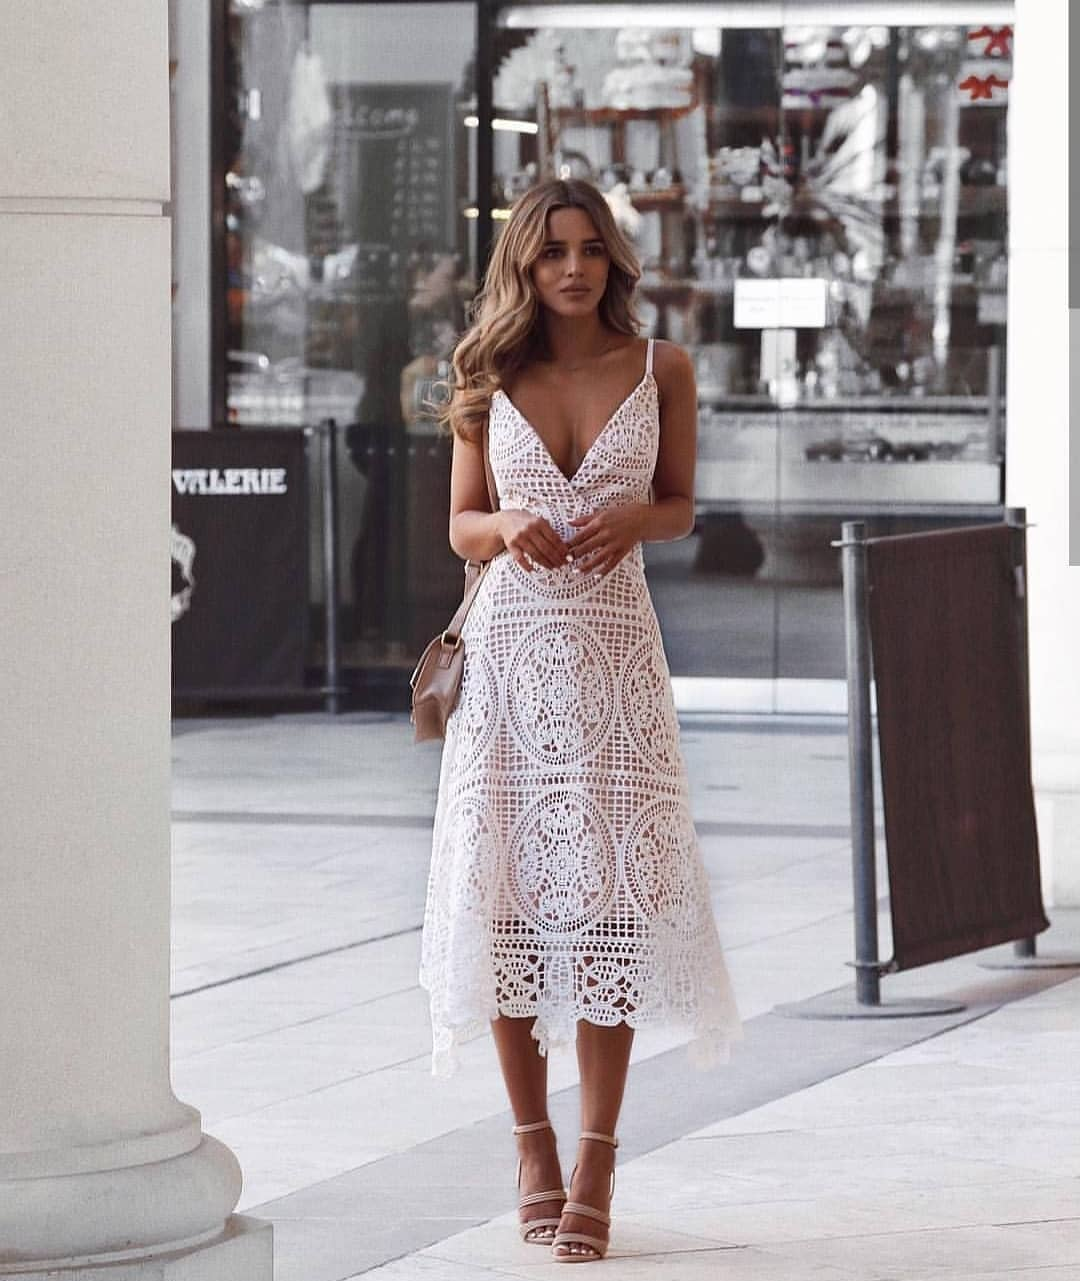 Boho Inspired White Crochet Midi Dress For Summer 2019